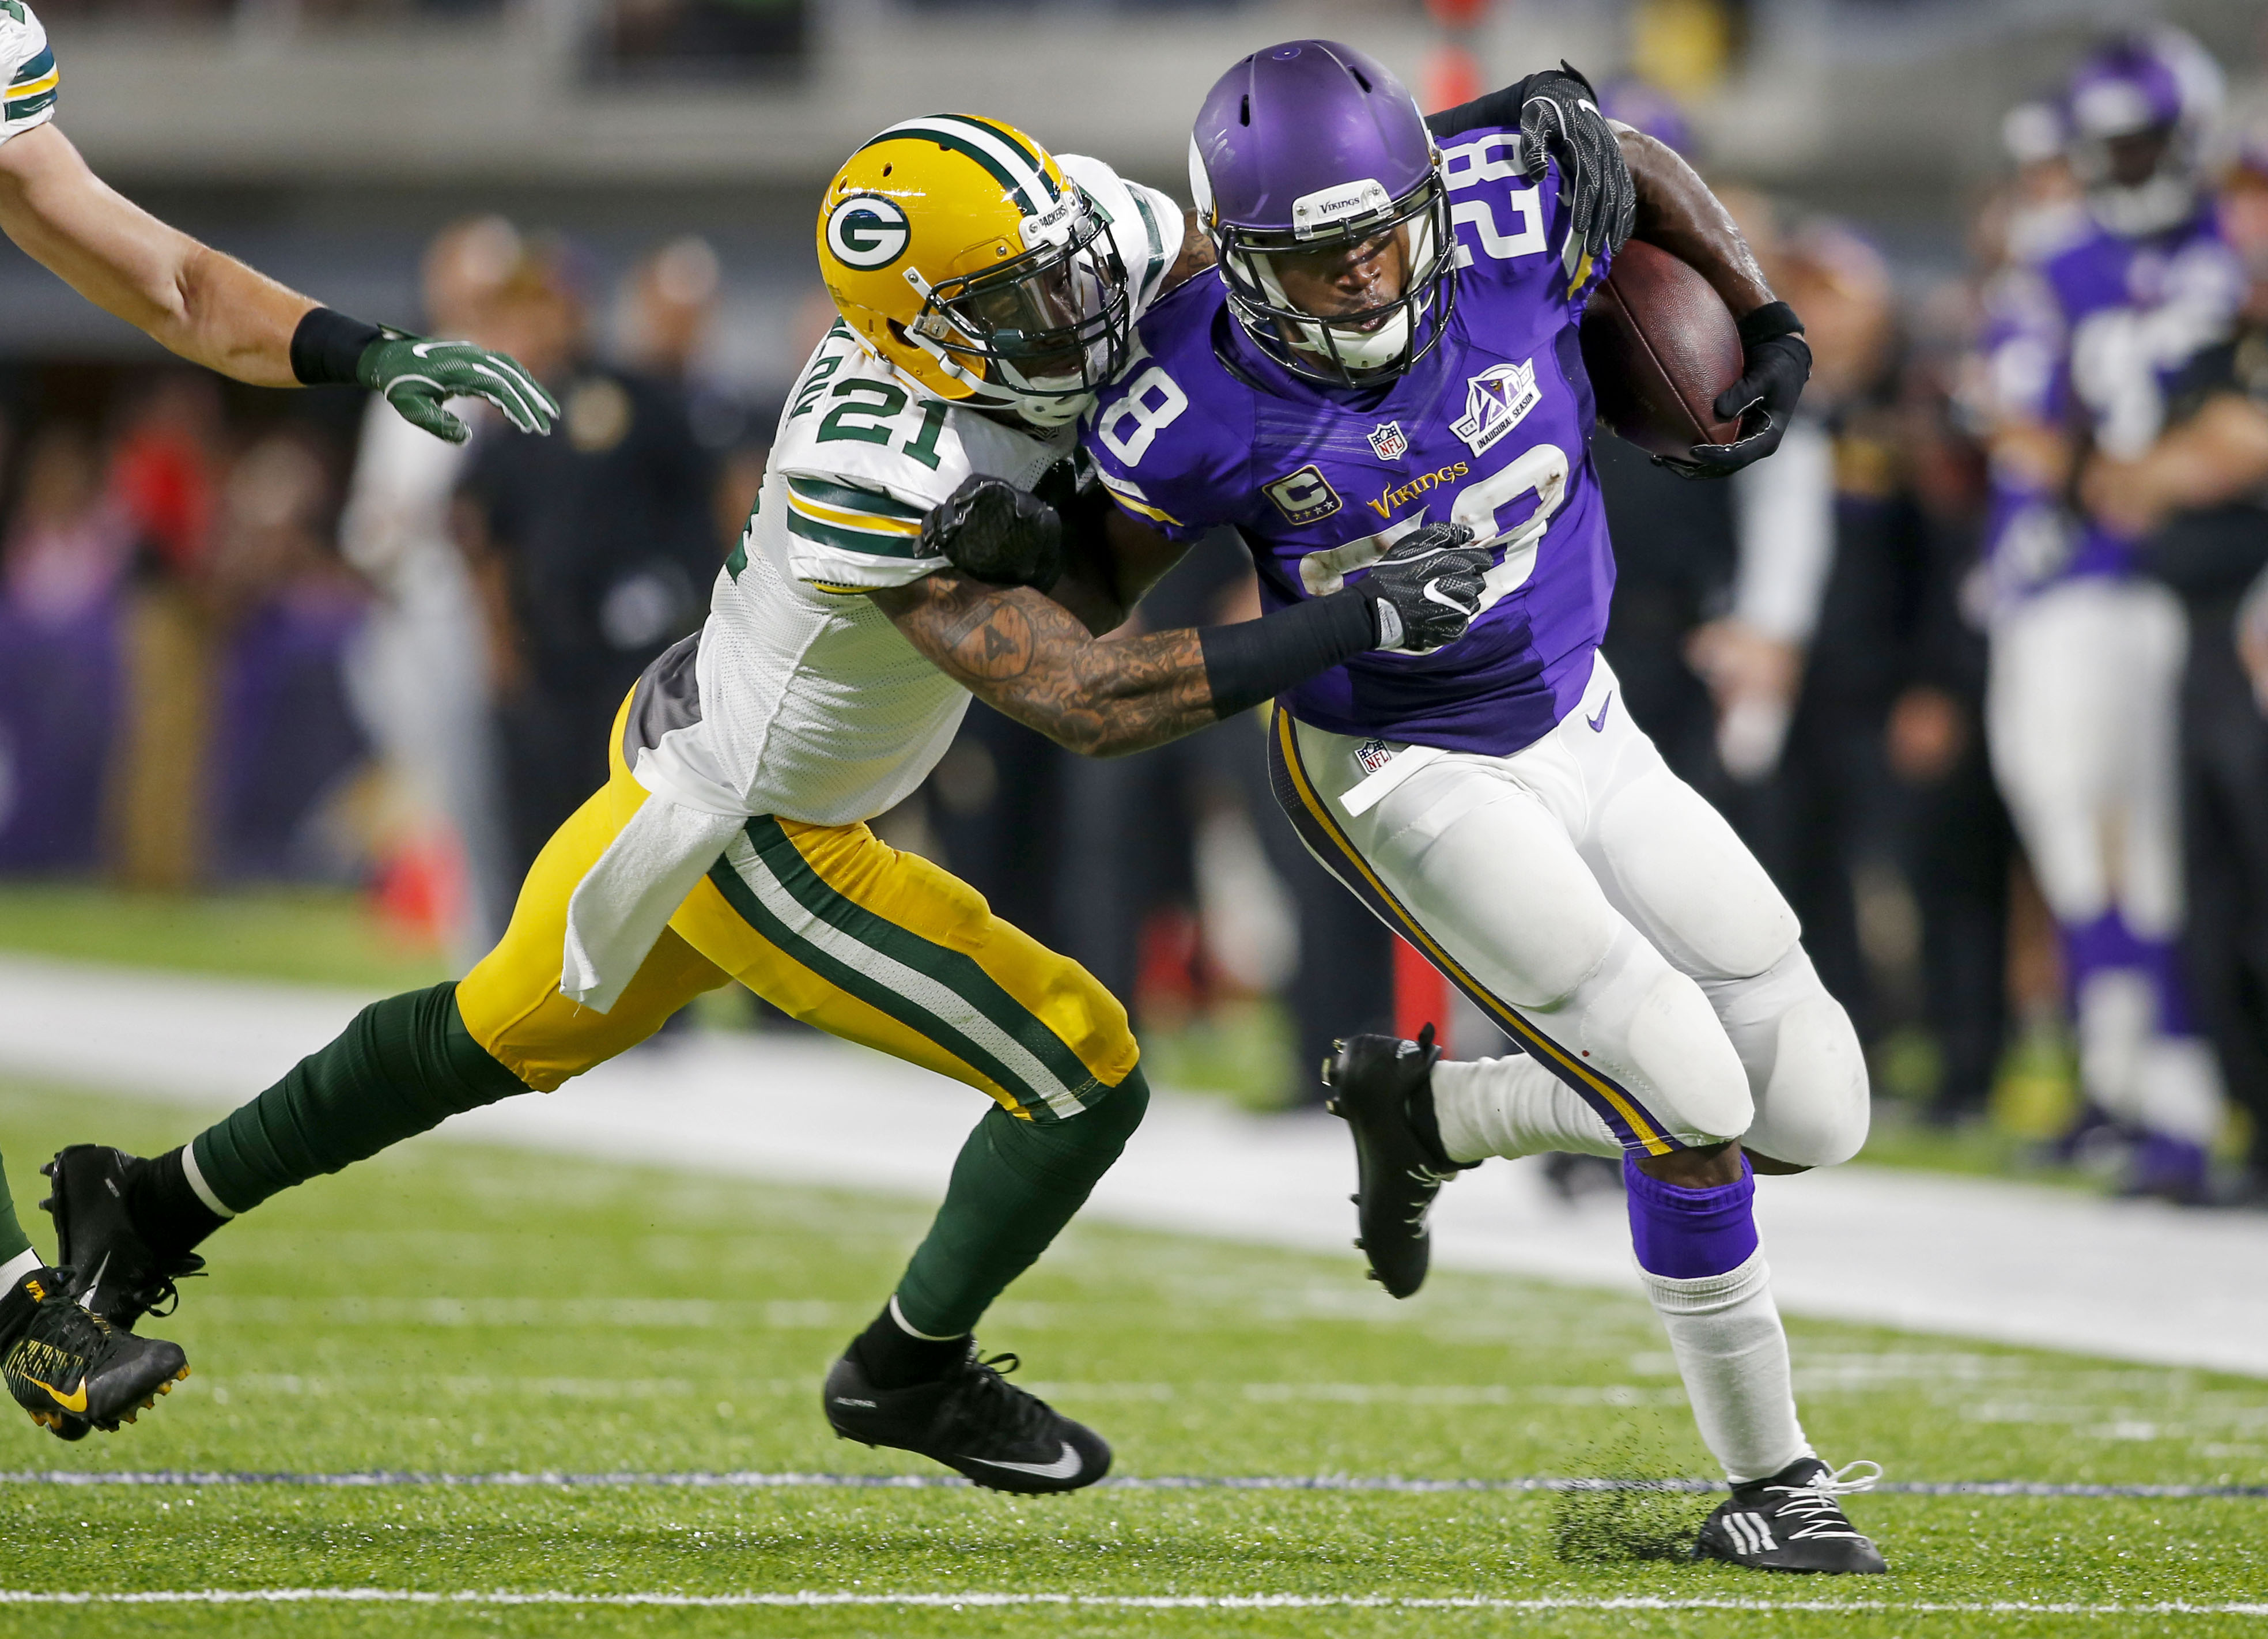 9552620-nfl-green-bay-packers-at-minnesota-vikings